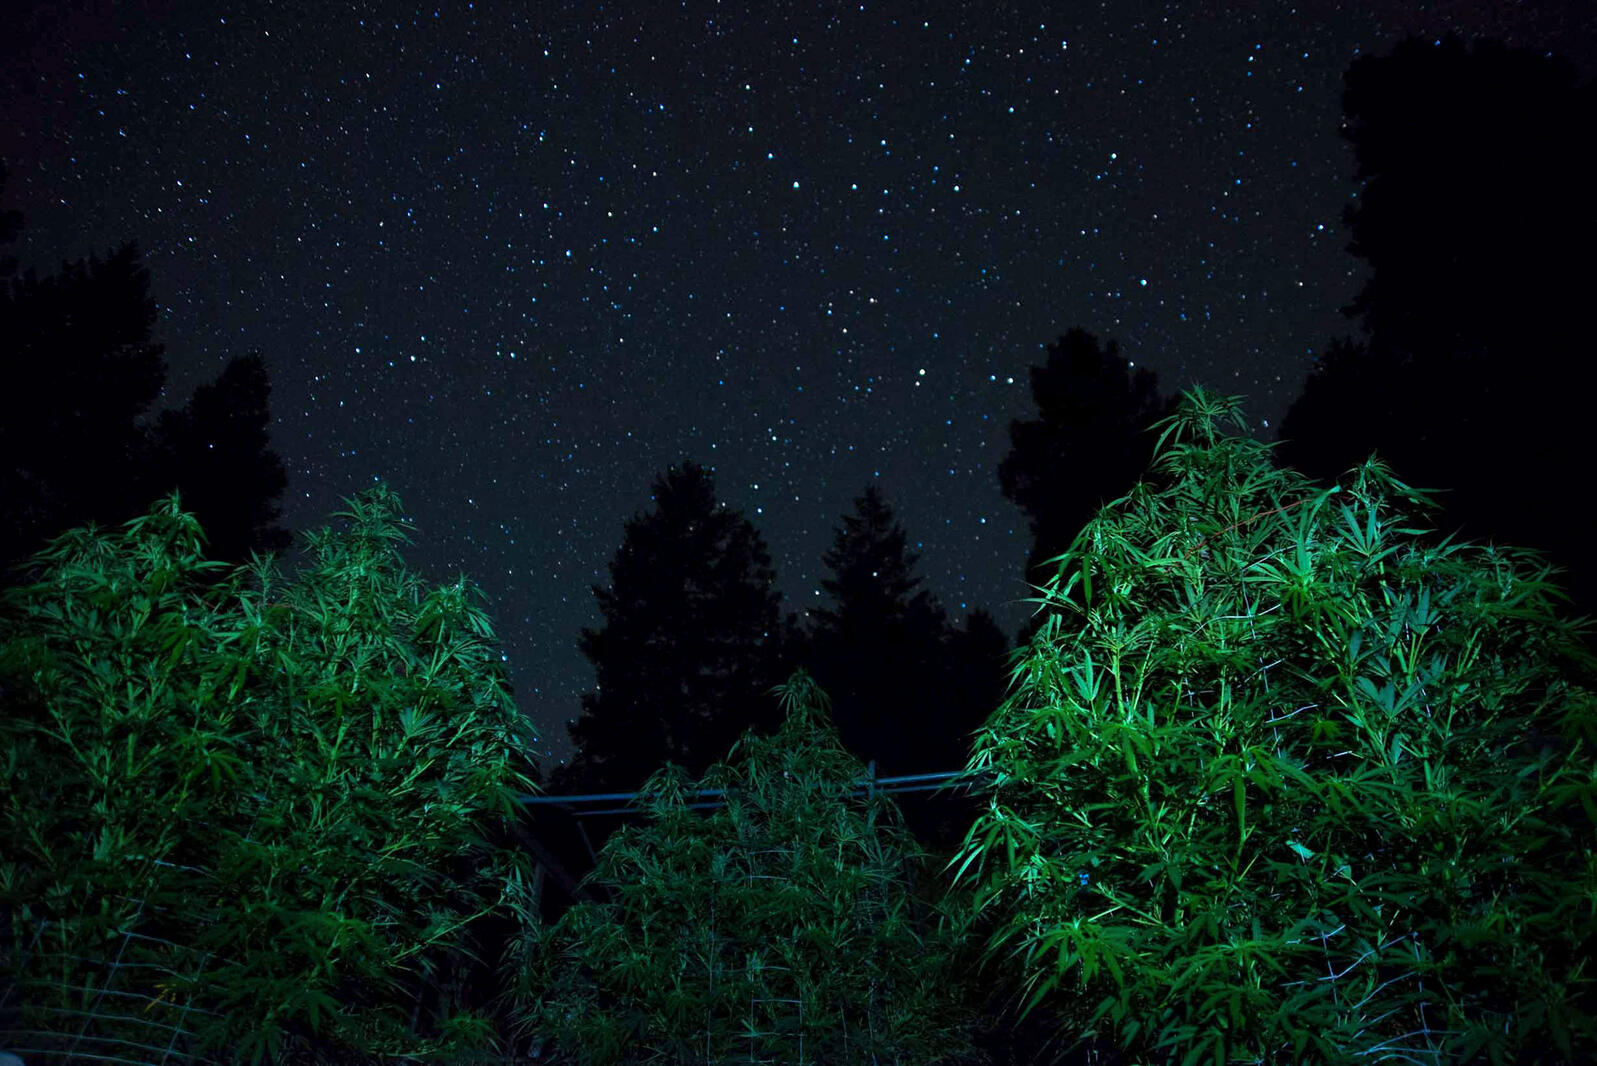 Blue dream cannabis plants at a grow site in Mendocino County, California. As legal farms take root around forests, night lighting becomes a concern for migrating birds and nocturnal wildlife. Zuma Press Inc./Alamy